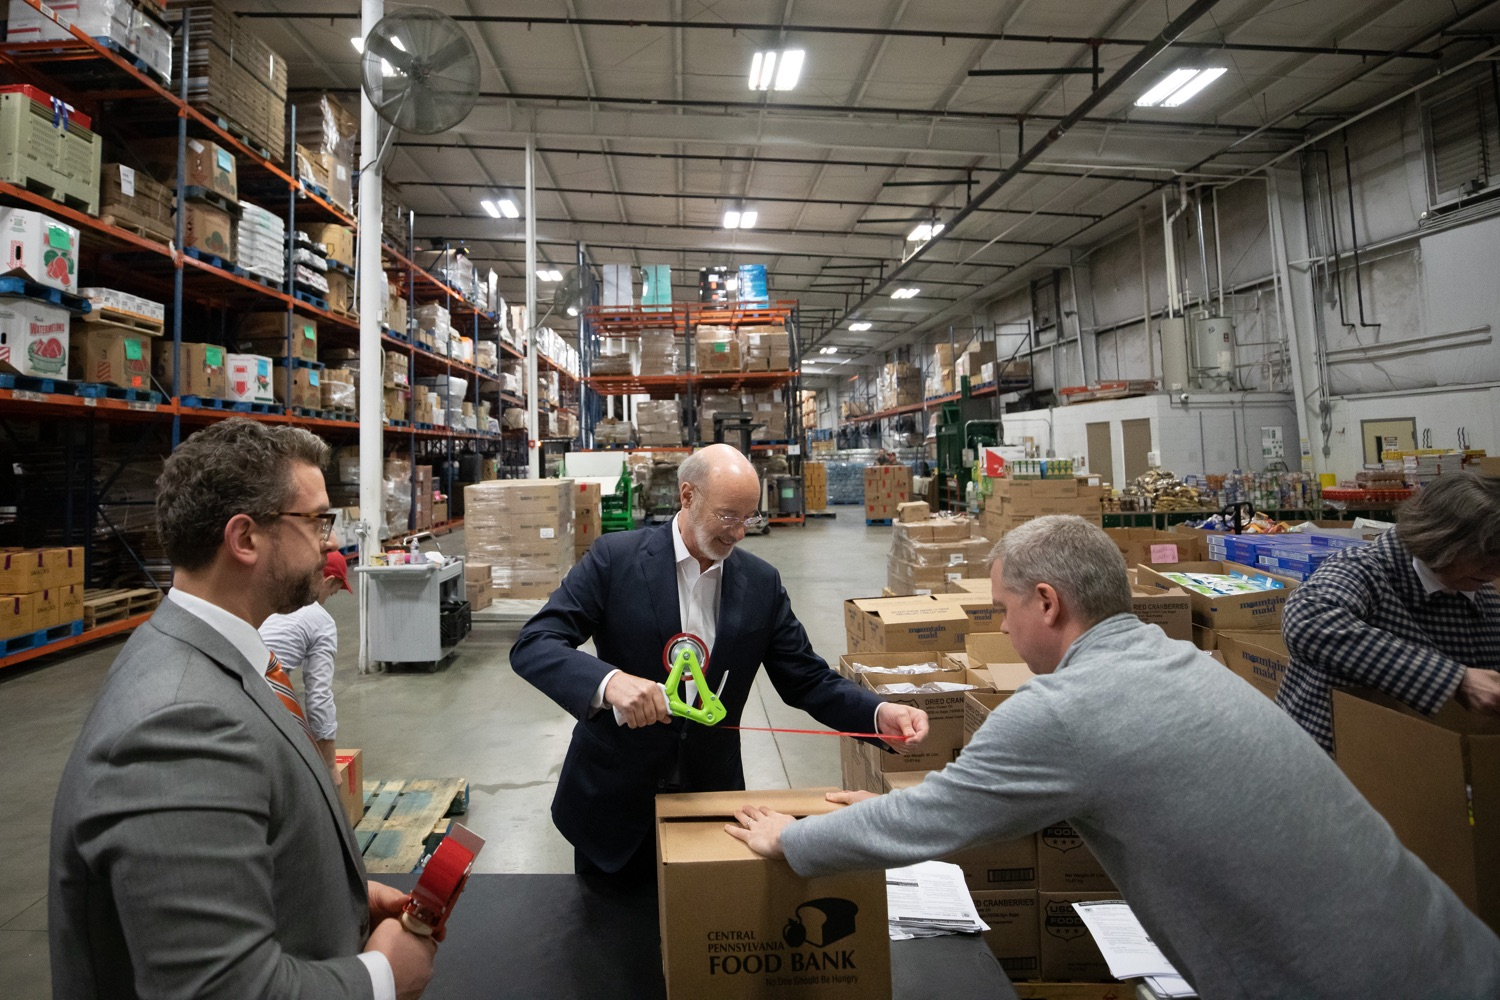 "<a href=""http://filesource.abacast.com/commonwealthofpa/photo/17632_gov_foodbank_volunteering_dz_003.jpg"" target=""_blank"">⇣ Download Photo<br></a>Governor Tom Wolf loading boxes of food at the Central Pennsylvania Food Bank.  The governor and first lady visit the Central Pennsylvania Food Bank in Harrisburg to participate in a volunteer project, packing boxes of food for veterans and their families. Ahead of Thanksgiving and the holiday season, Governor Tom Wolf and First Lady Frances Wolf are reminding Pennsylvanians of the importance of helping each other. Harrisburg, PA  Tuesday November 26, 2019"